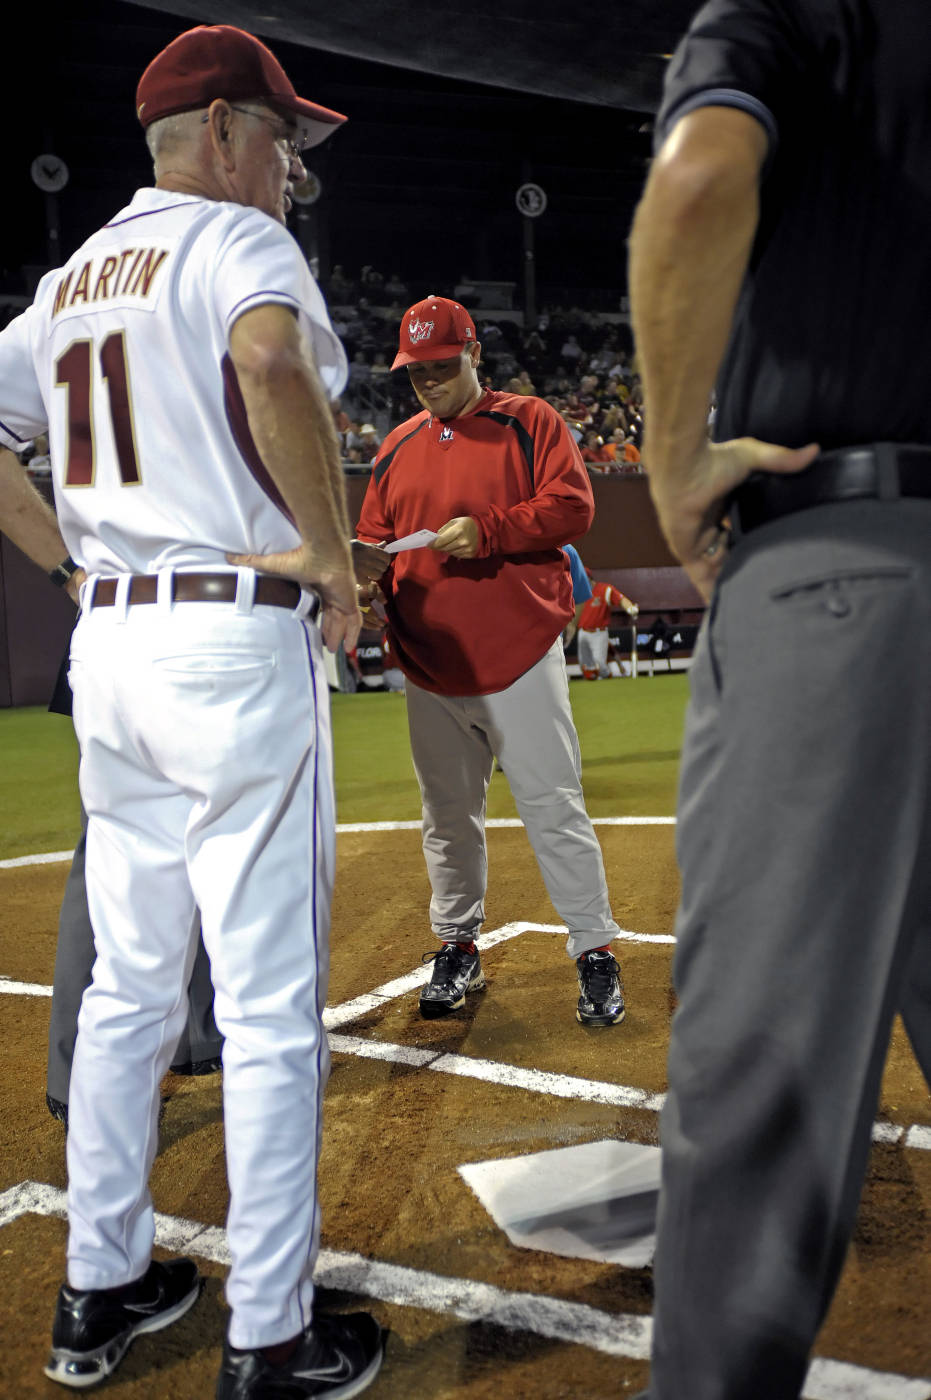 Head coach Mike Martin meets at the mound with Marist head coach Dennis Healy